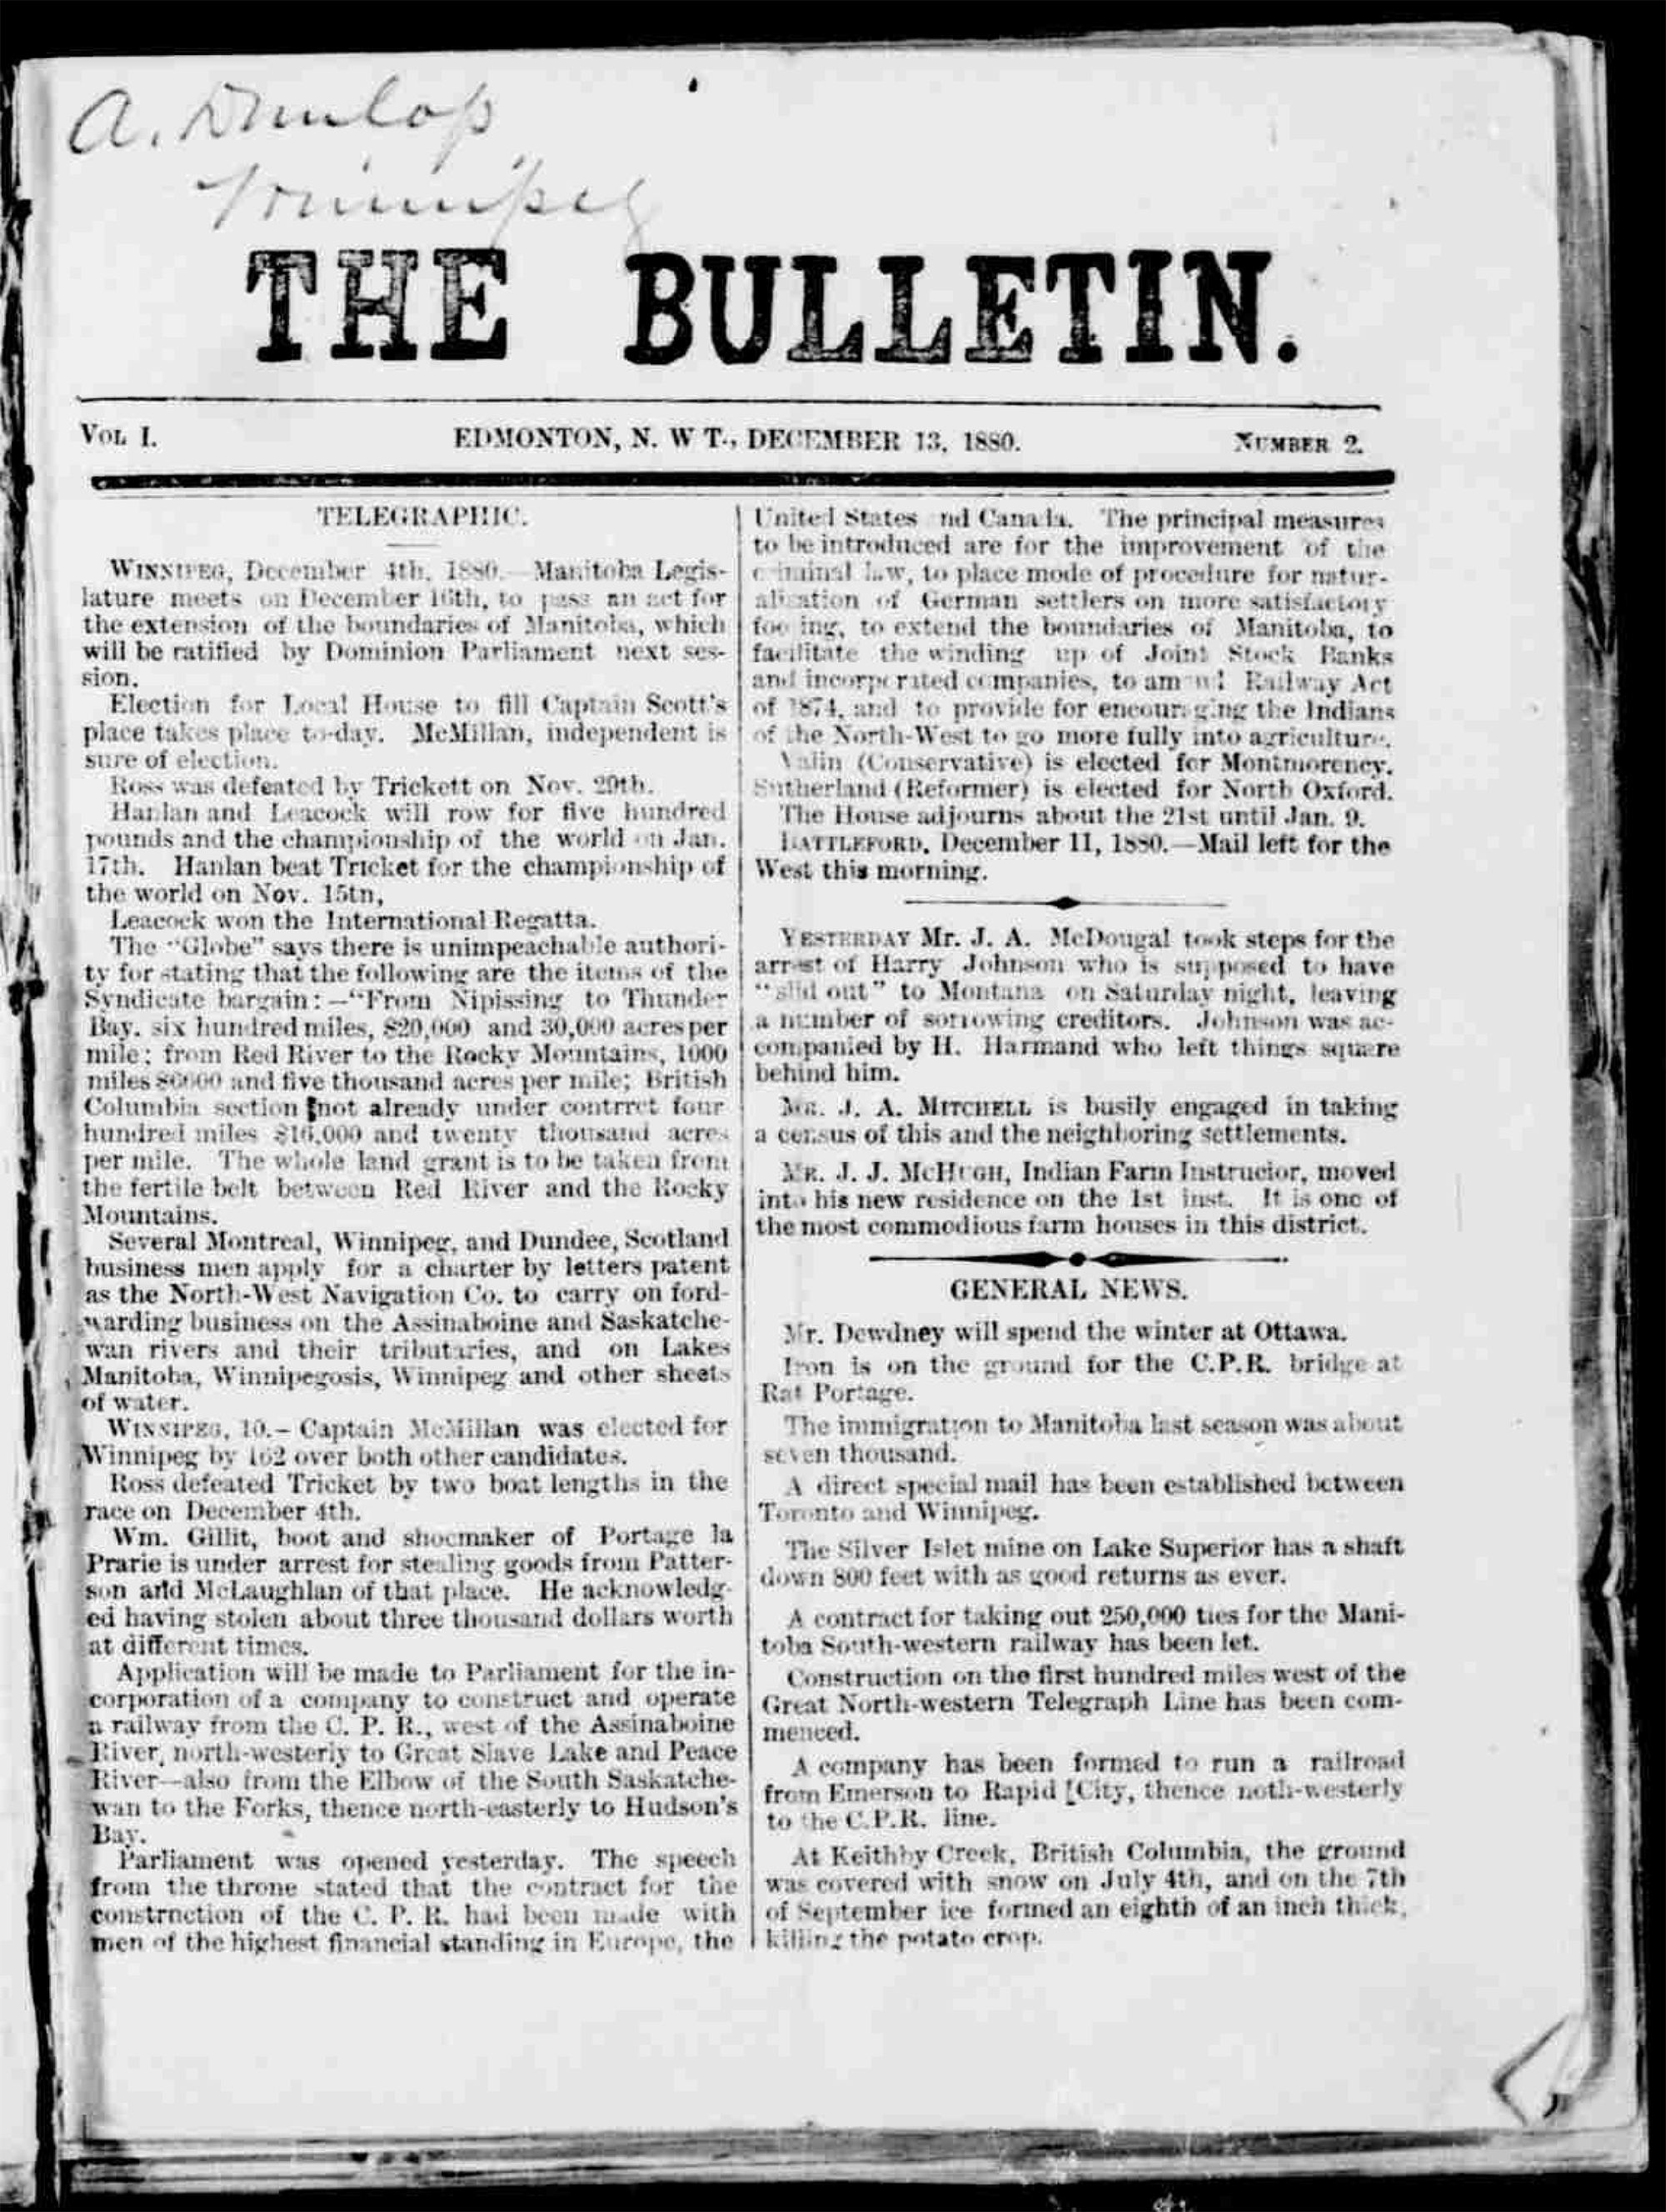 The Edmonton Bulletin